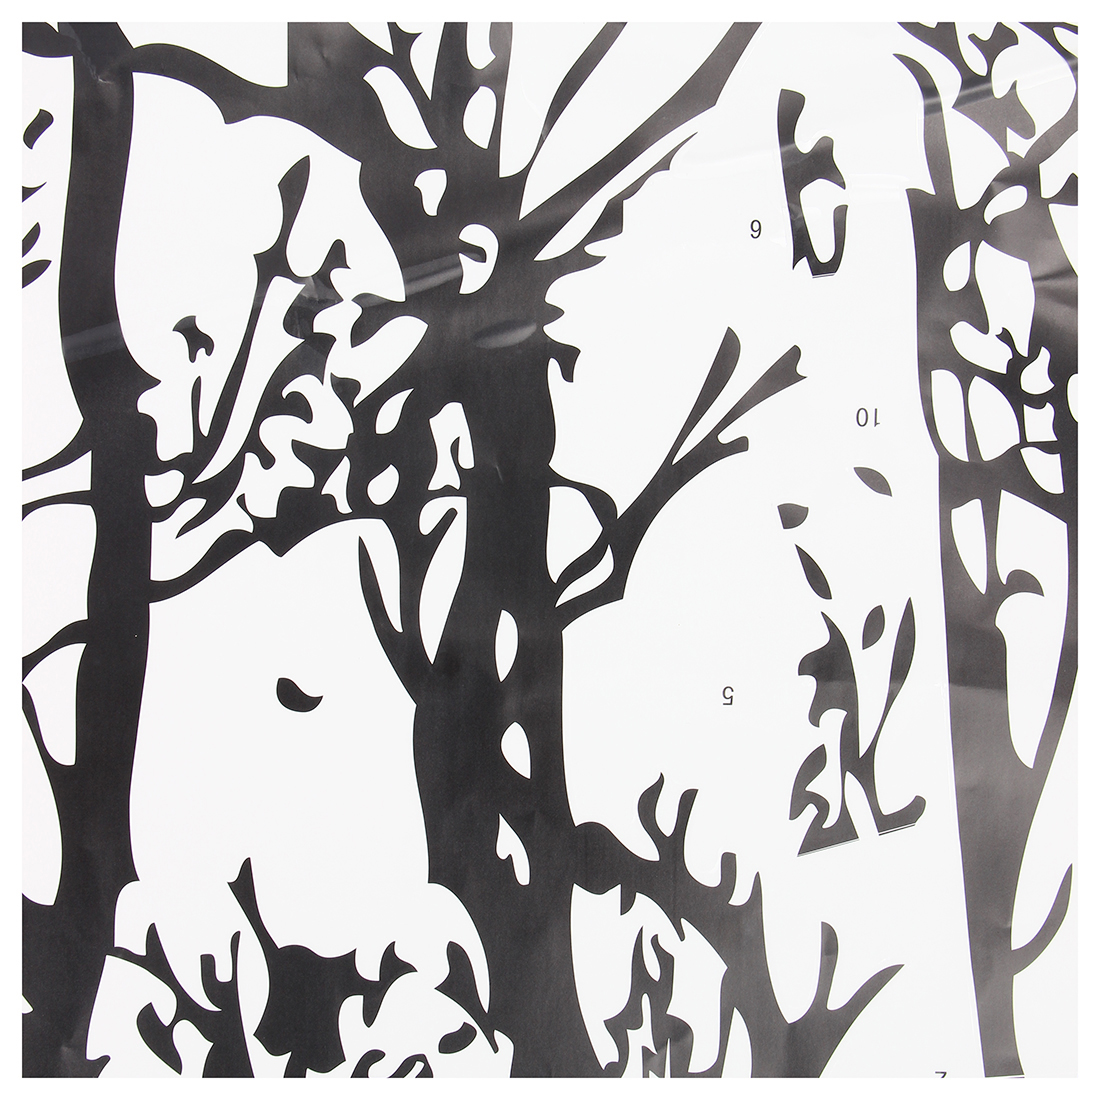 Z2g3 10x black tree branch pvc removable room art mural for Black tree mural